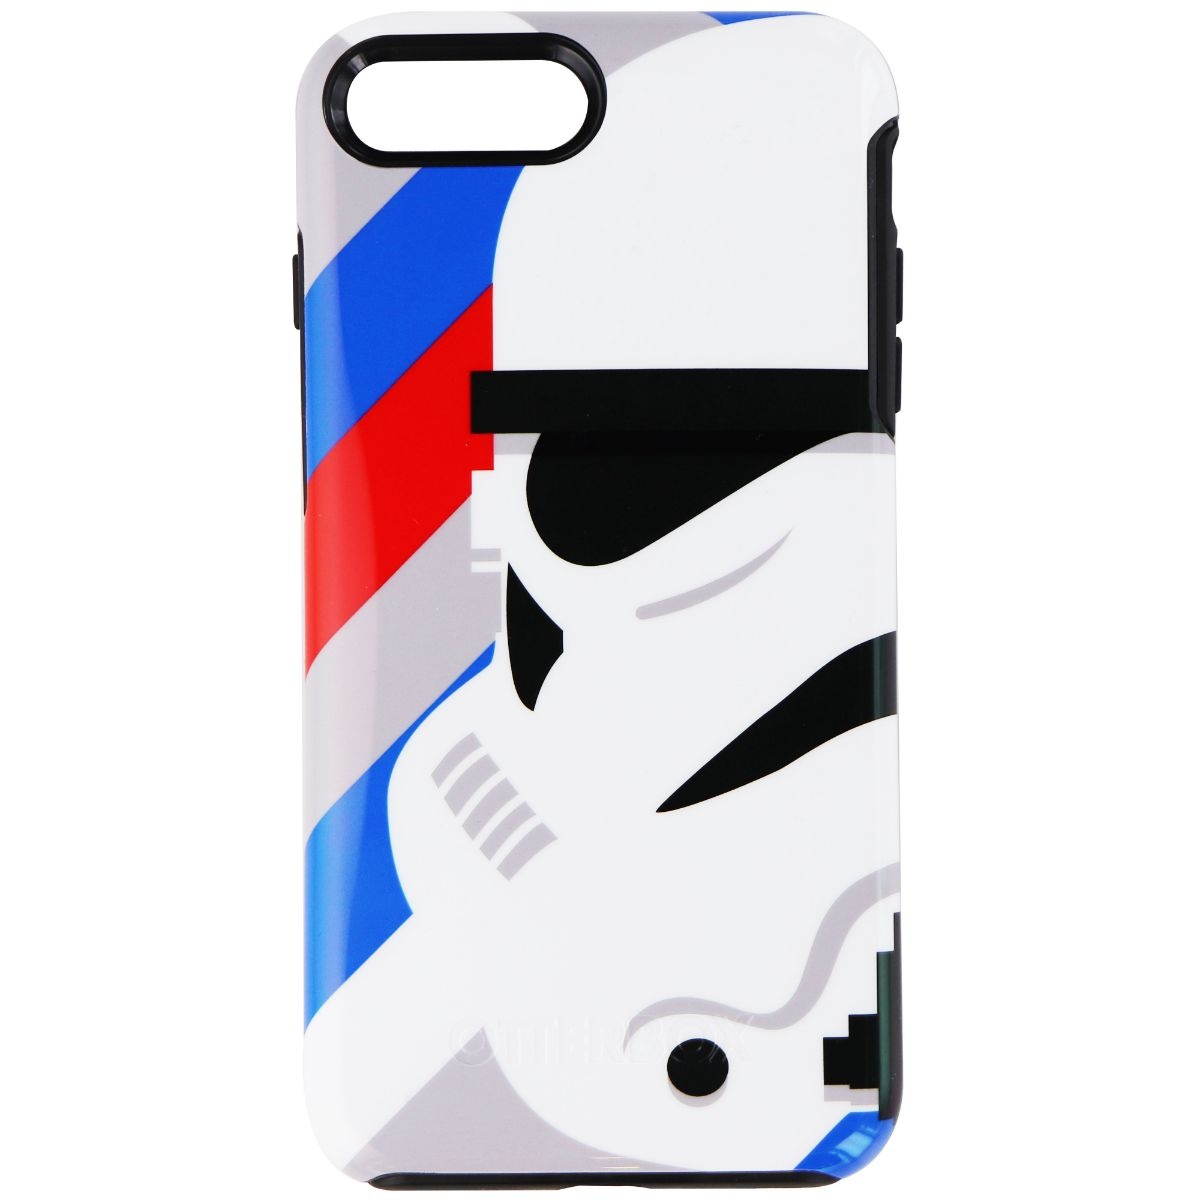 OtterBox Symmetry Star Wars Case for Apple iPhone 8 Plus / 7 Plus - Stormtrooper